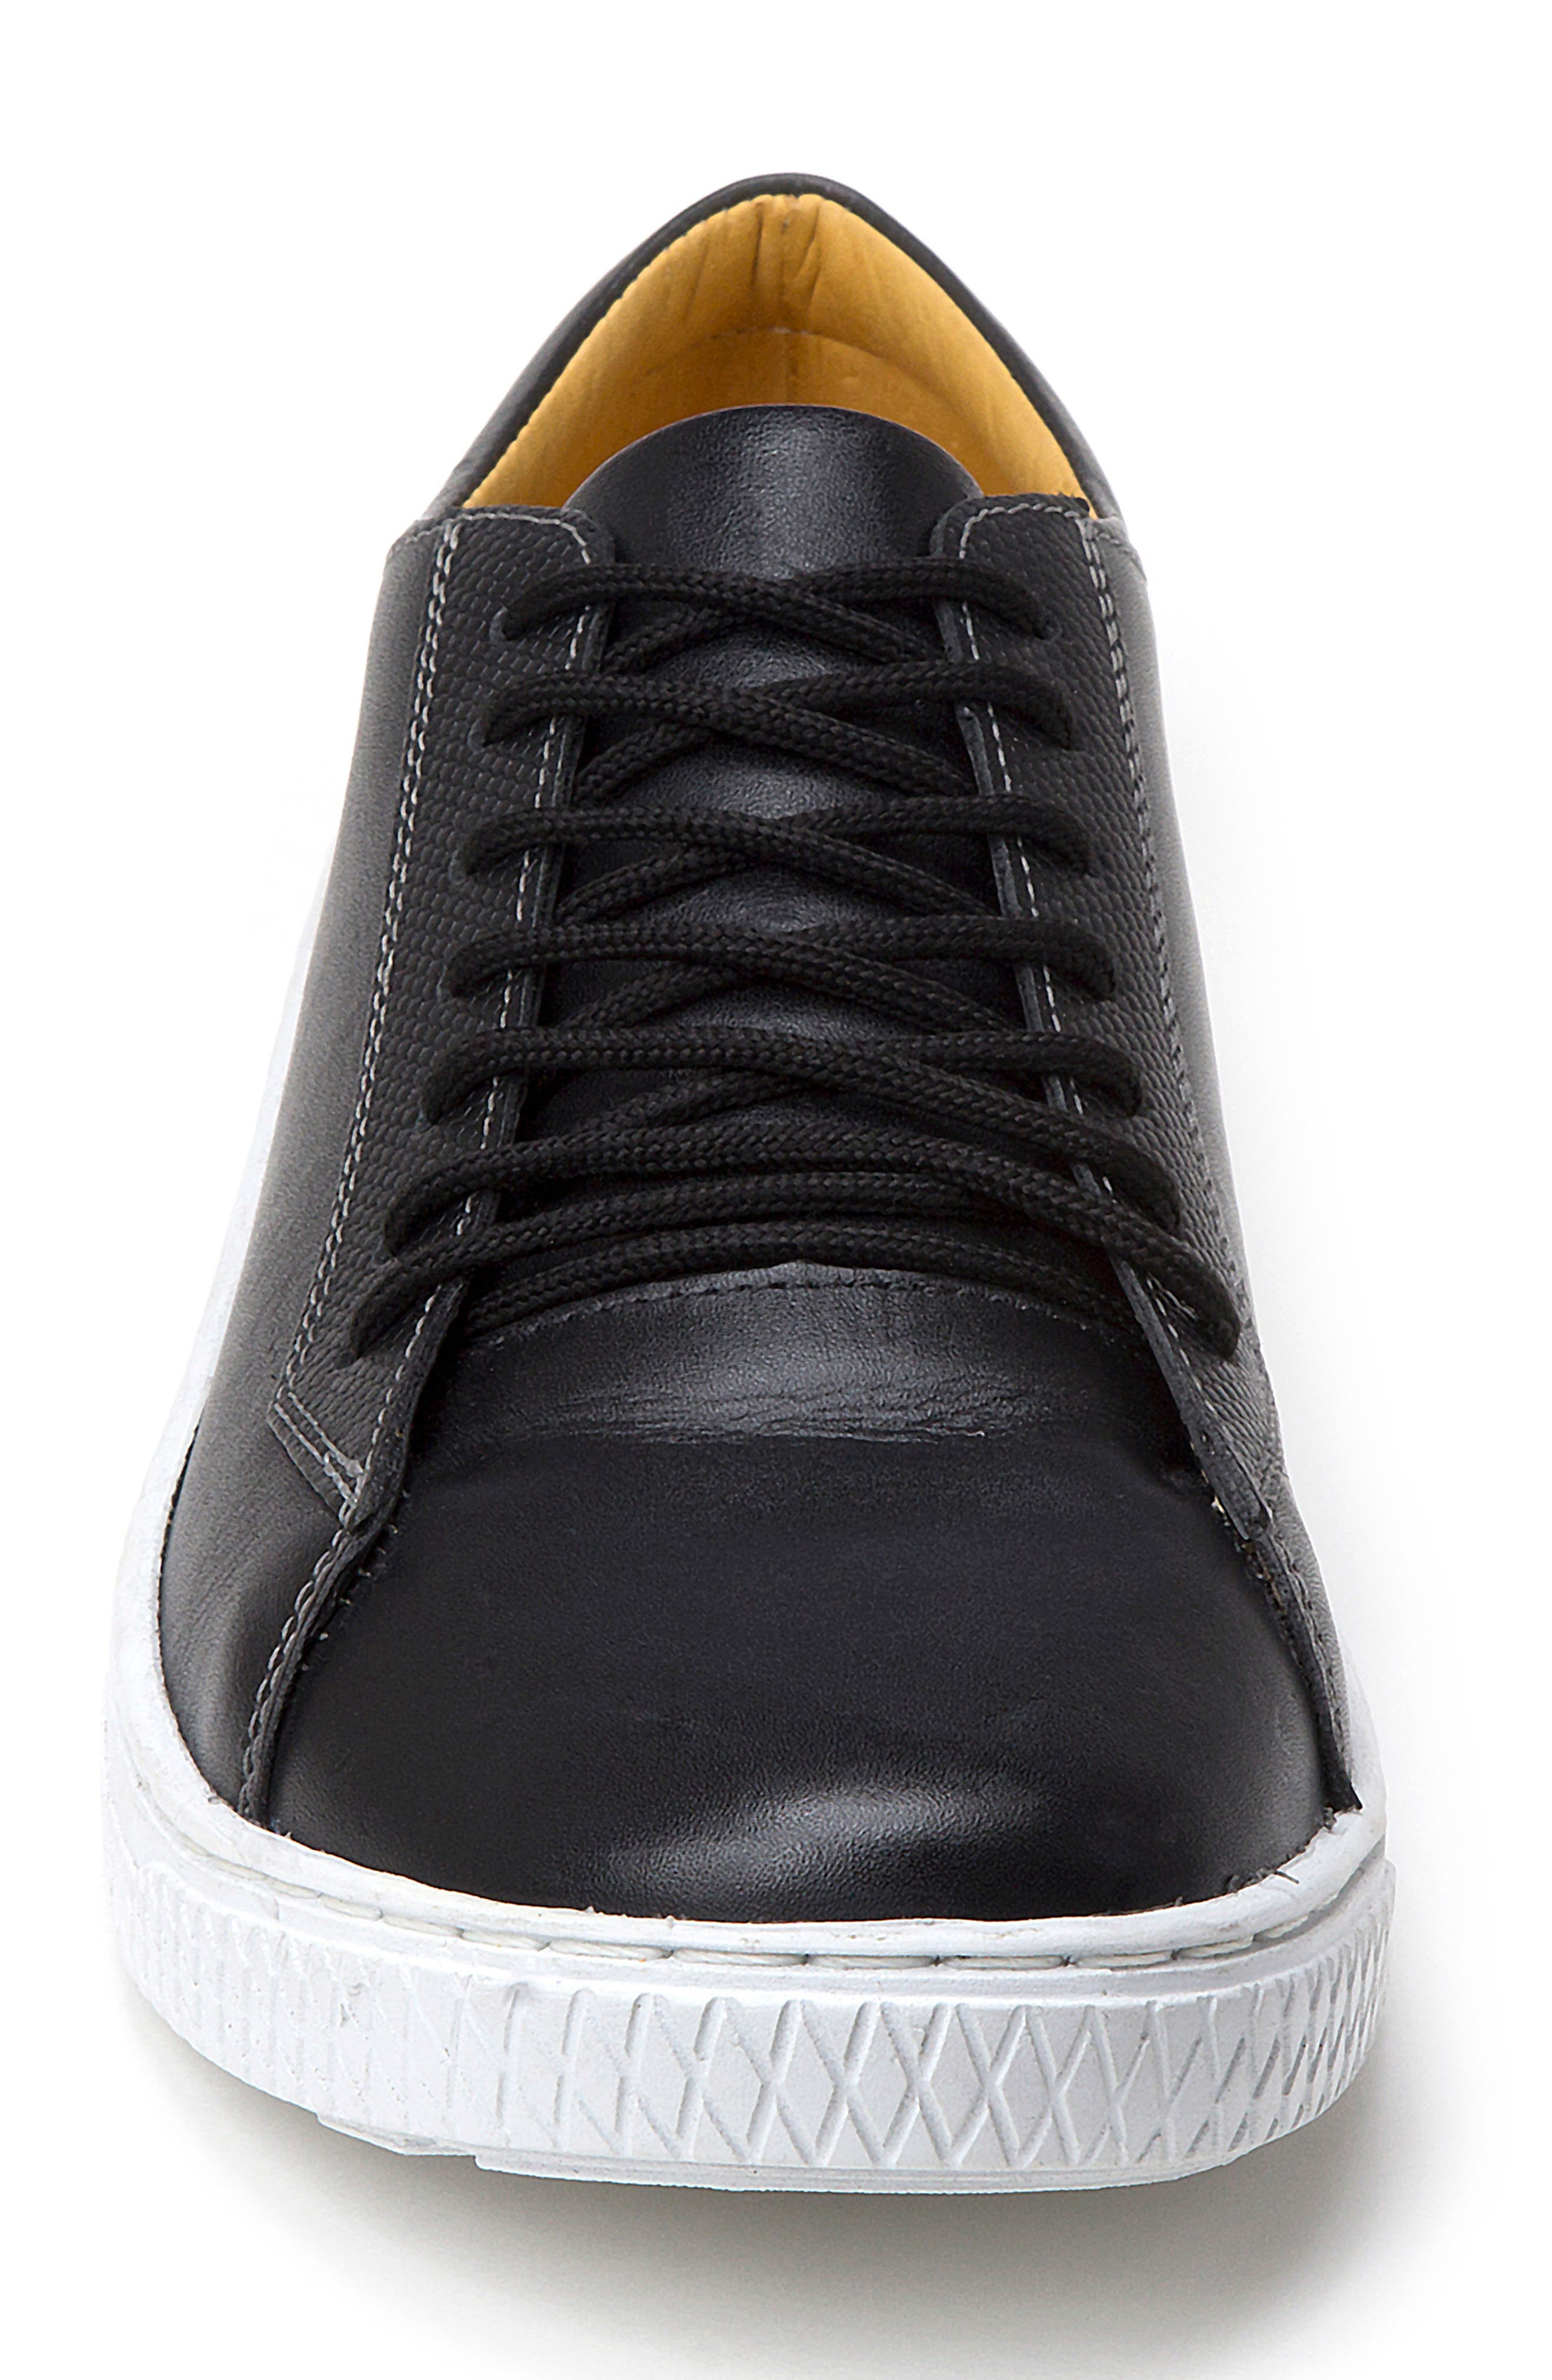 Minh Low Top Sneaker,                             Alternate thumbnail 4, color,                             BLACK LEATHER